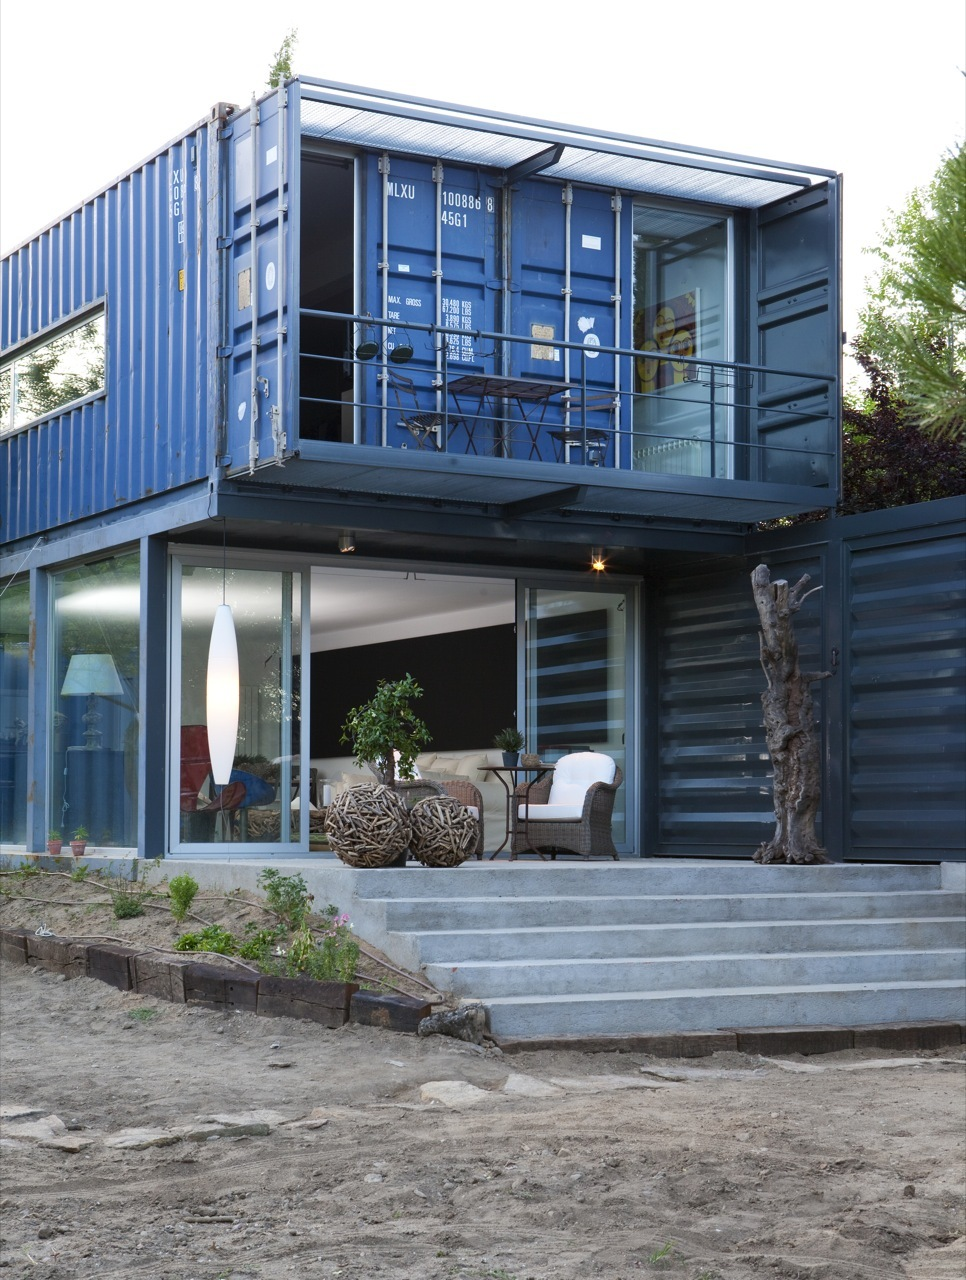 shipping container homes two story container house in el tiemblo spain. Black Bedroom Furniture Sets. Home Design Ideas